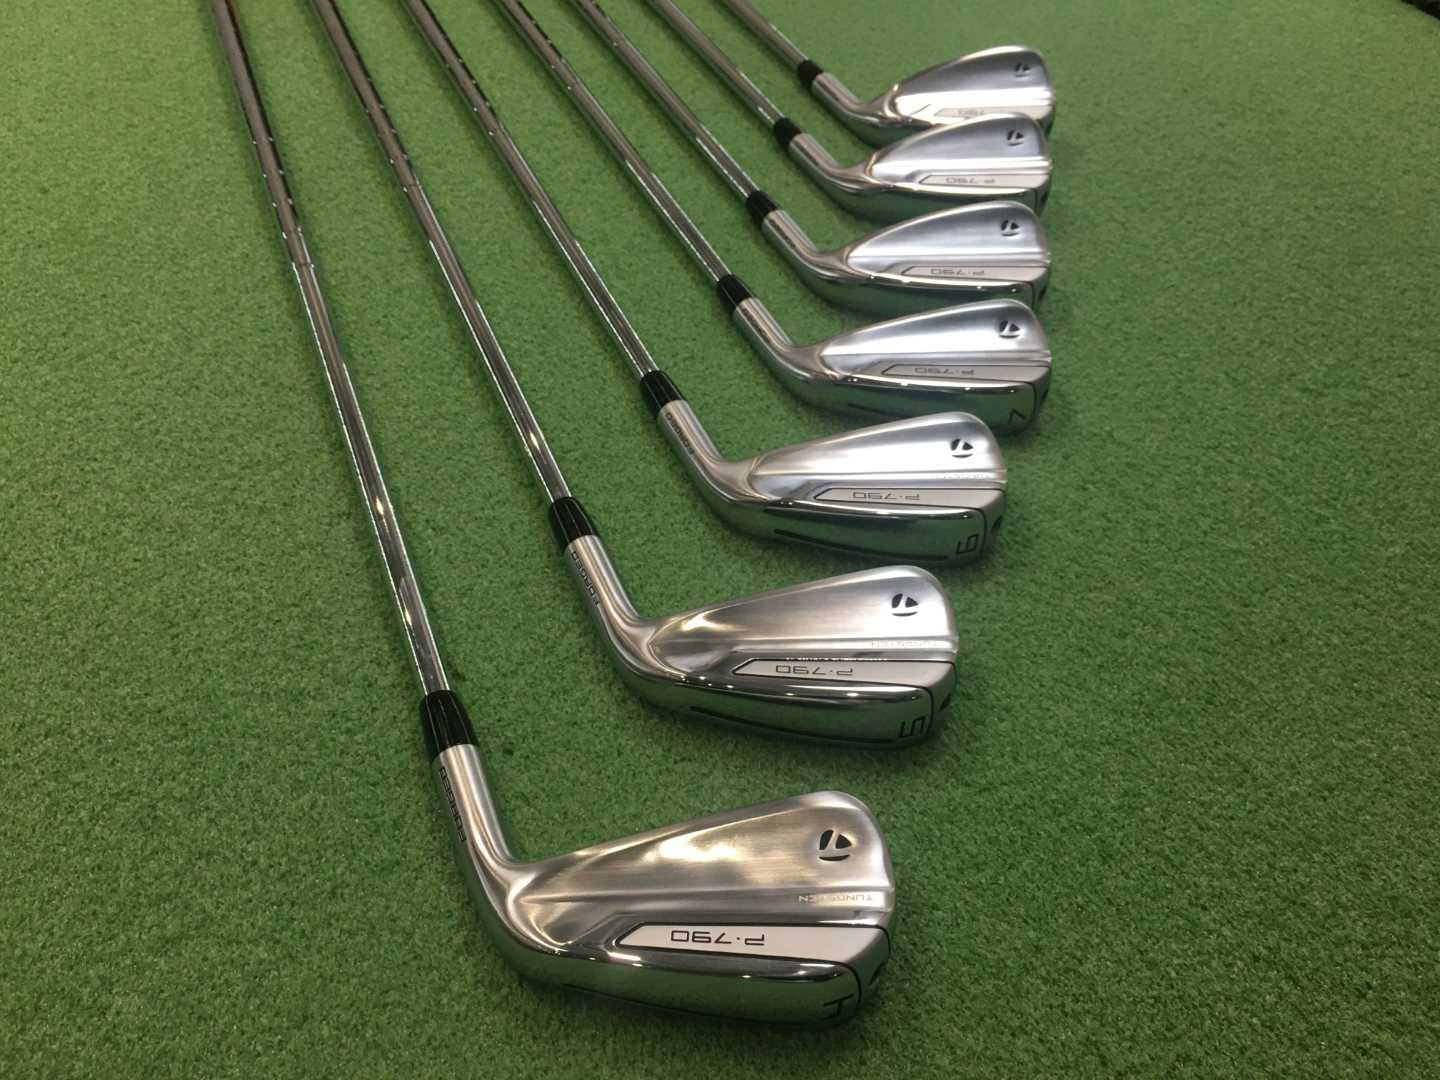 Build of the Week is these Taylormade P790's with Modus 105's, SST Pured with Pure Pro Red grips.